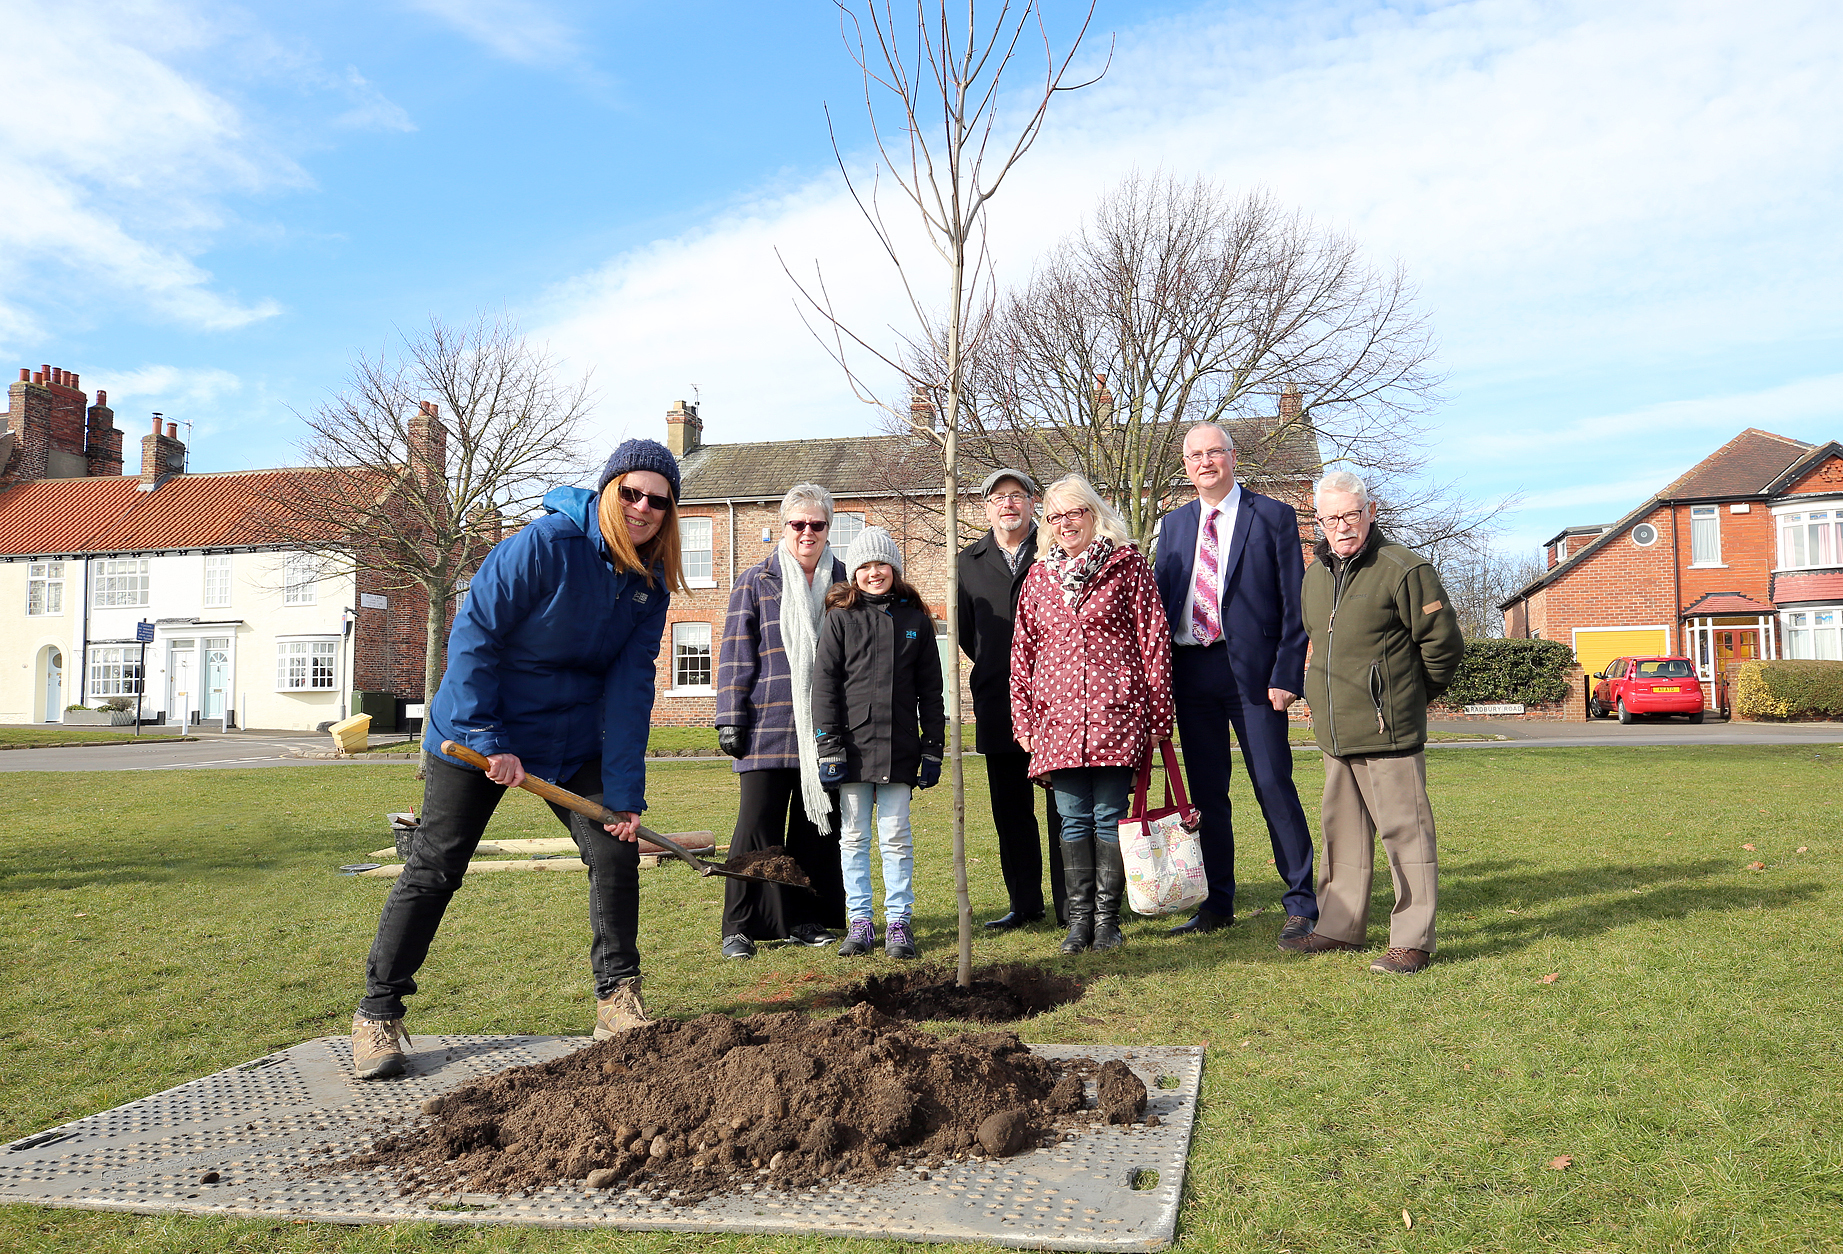 MEMORIAL: Tree planting on Norton Green in memorial of historian Bob Harbron. Pictured are Daughter Patricia Guirguis, daughter; Linda Jeavons; granddaughter Mary Guirguis, 11; son-in-law Michael Black; daughter Christine Black; Councillor Steve Nelson co